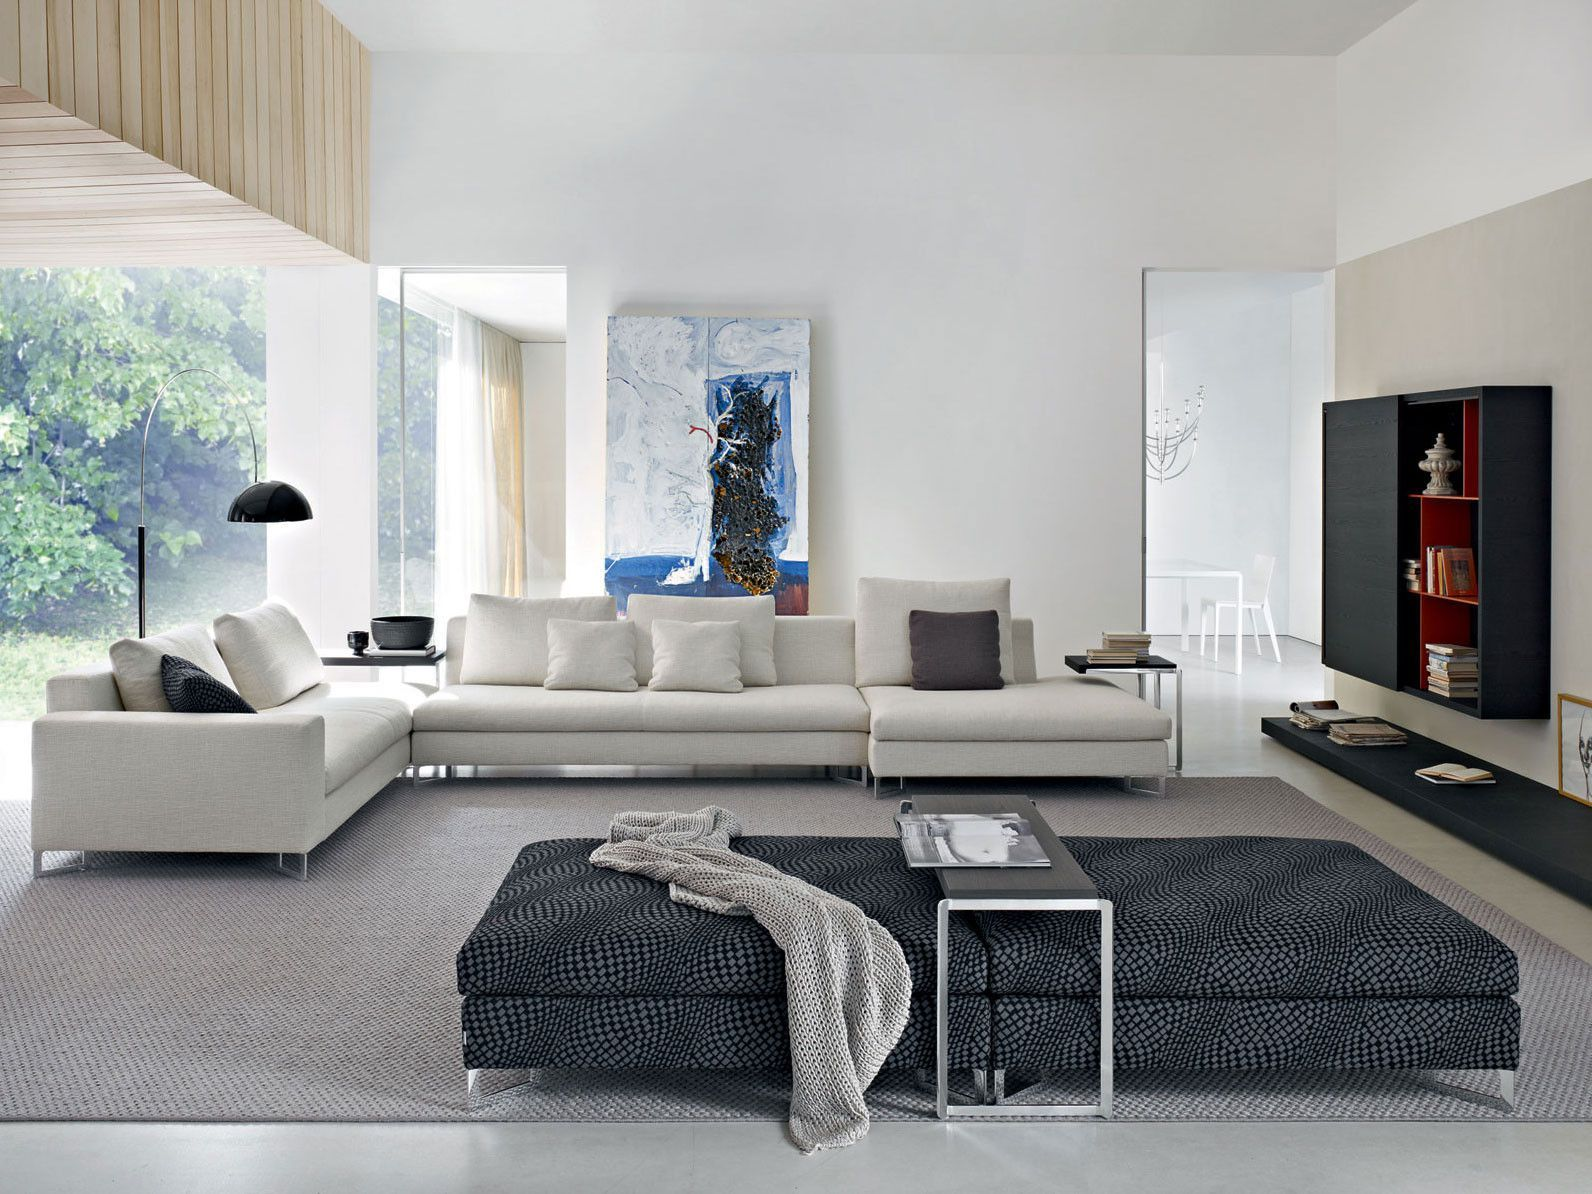 Large Sofa Collection by Molteni & C